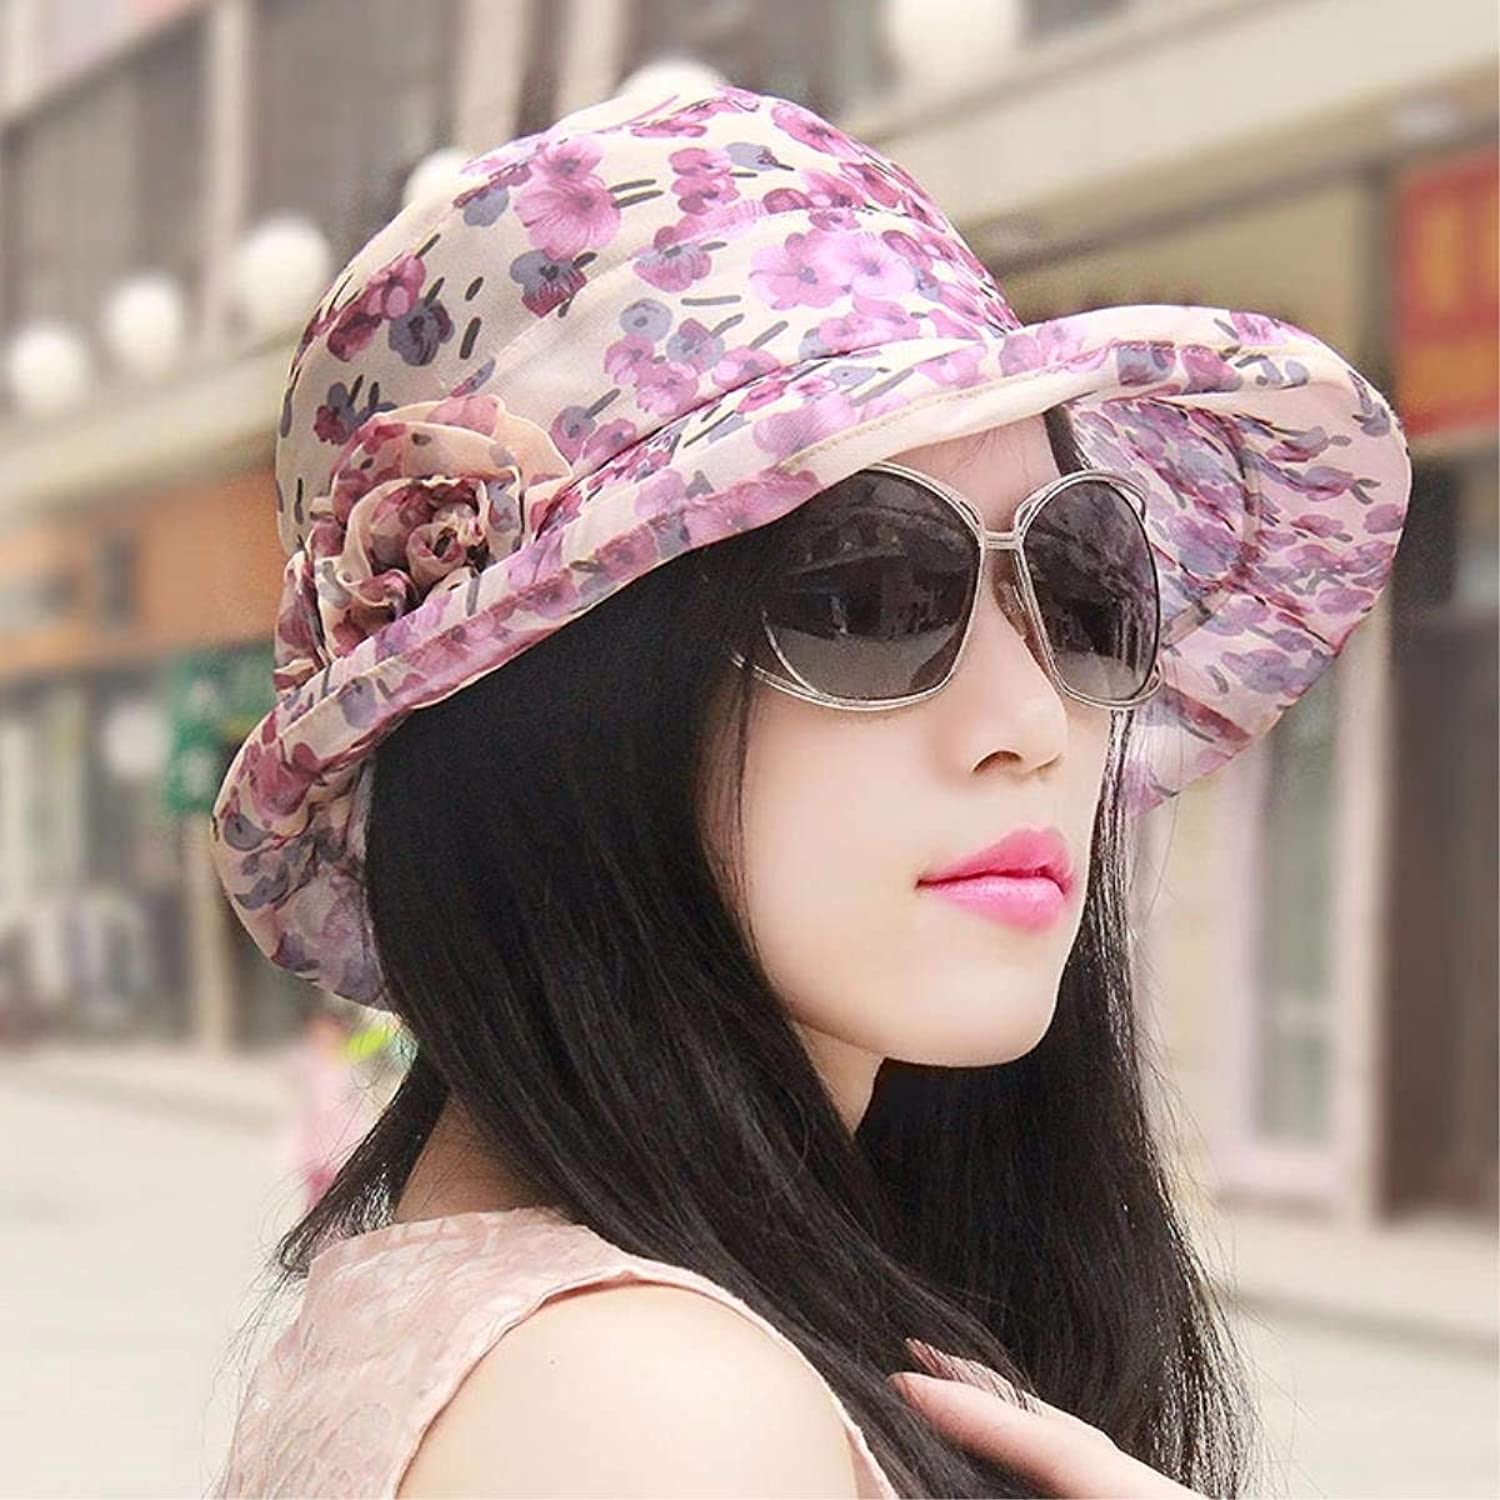 Dianye The hat female summer hats basin cap snow spinning cap, visor cool cap flowers beach cap low